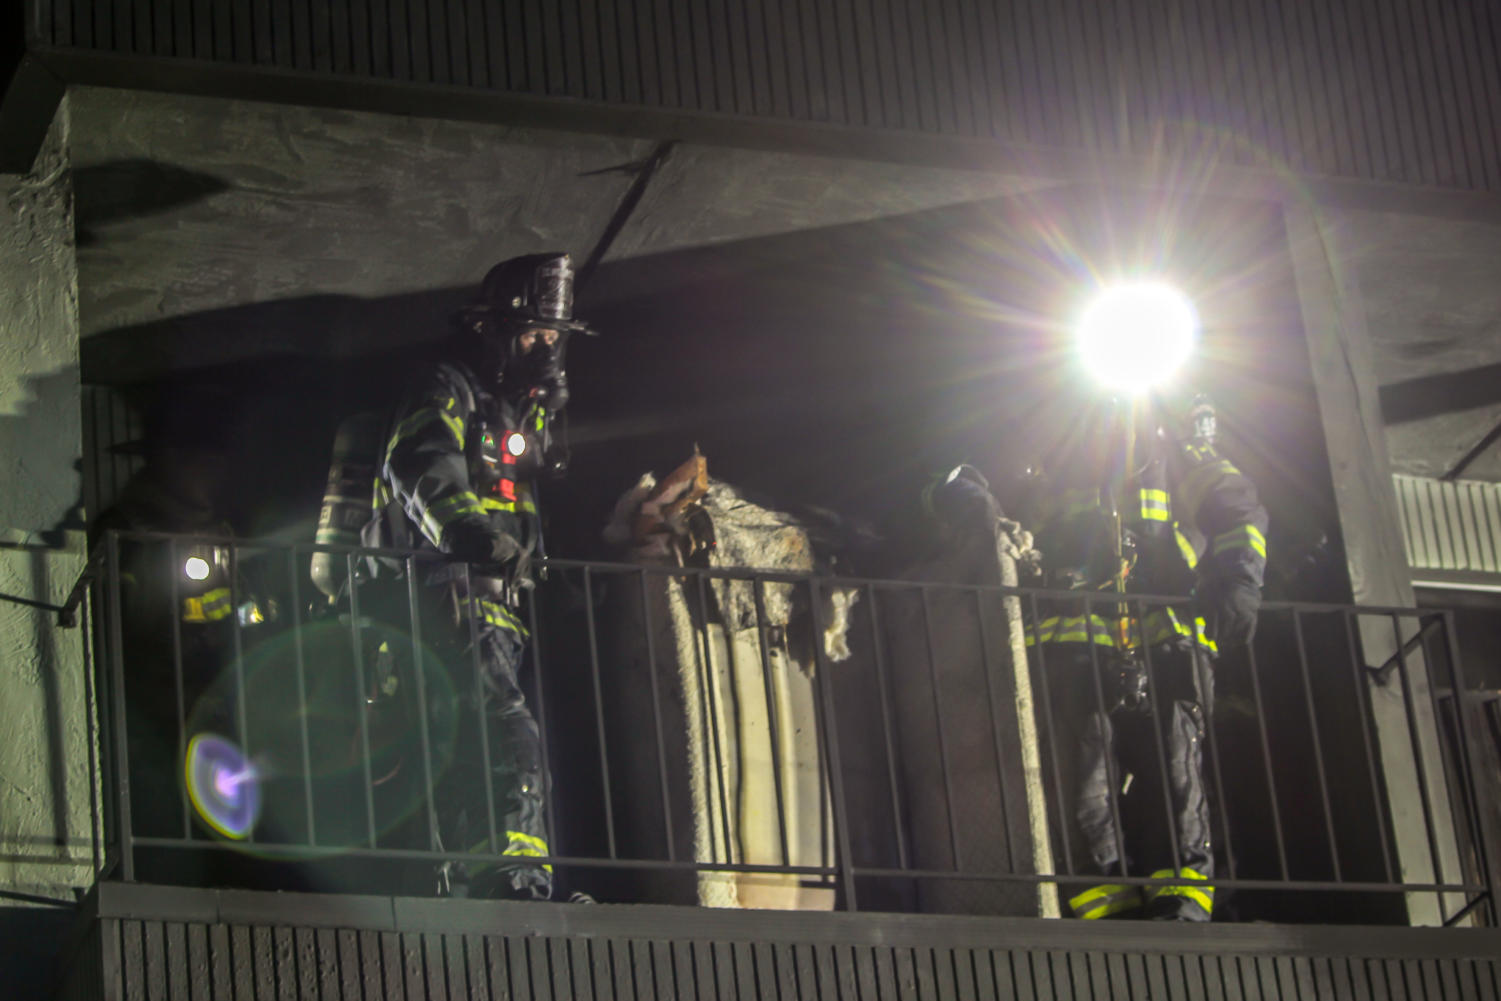 Two+firefighters+throw+the+remains+of+a+couch+off+a+second+story+balcony.